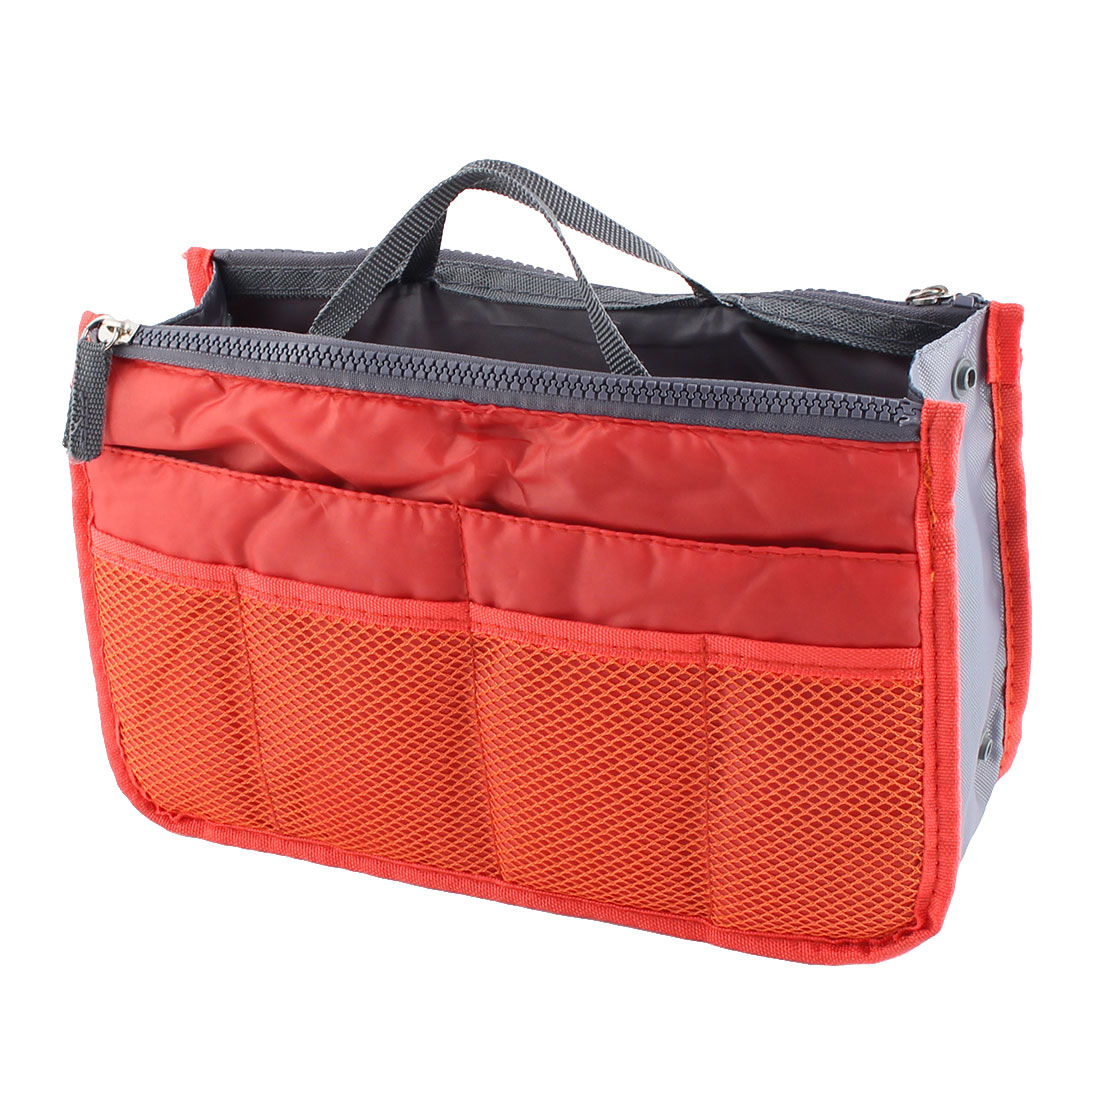 Portable Multi-functional Storage Bag Handbag Organizer Holder Container Orange